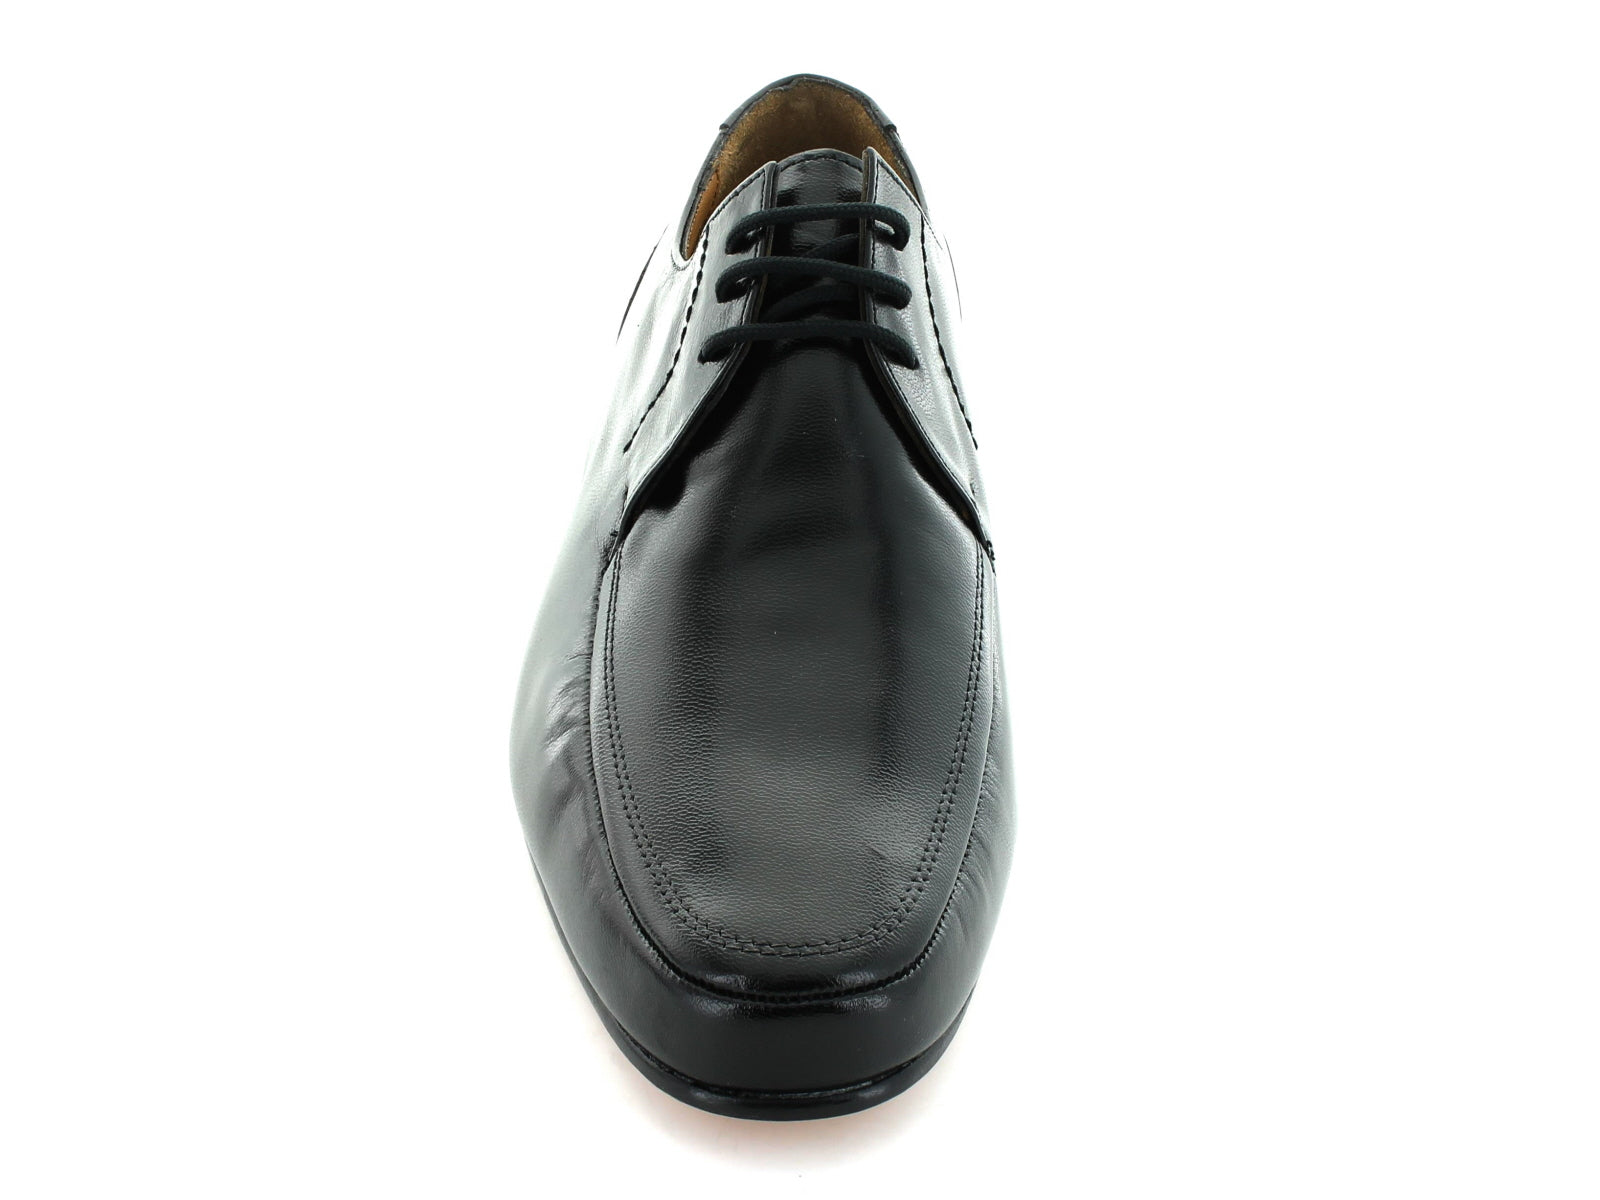 Rombah Wallace Romsey 8309 in Black Leather front view